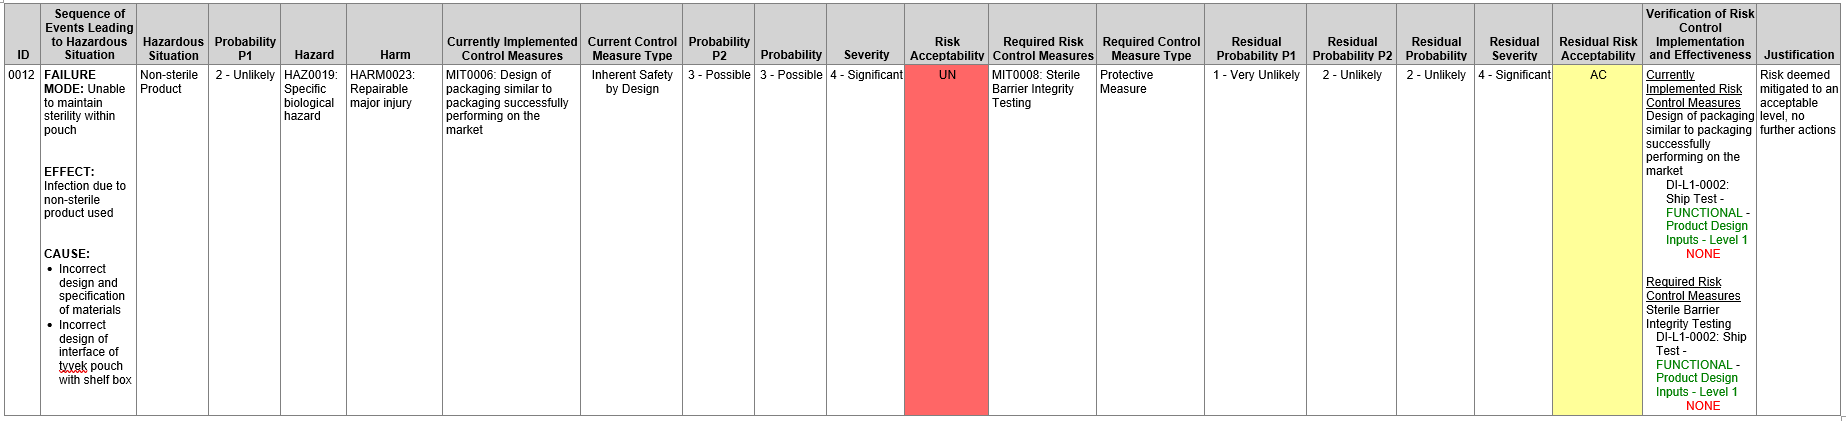 Complete Risk Analysis Table